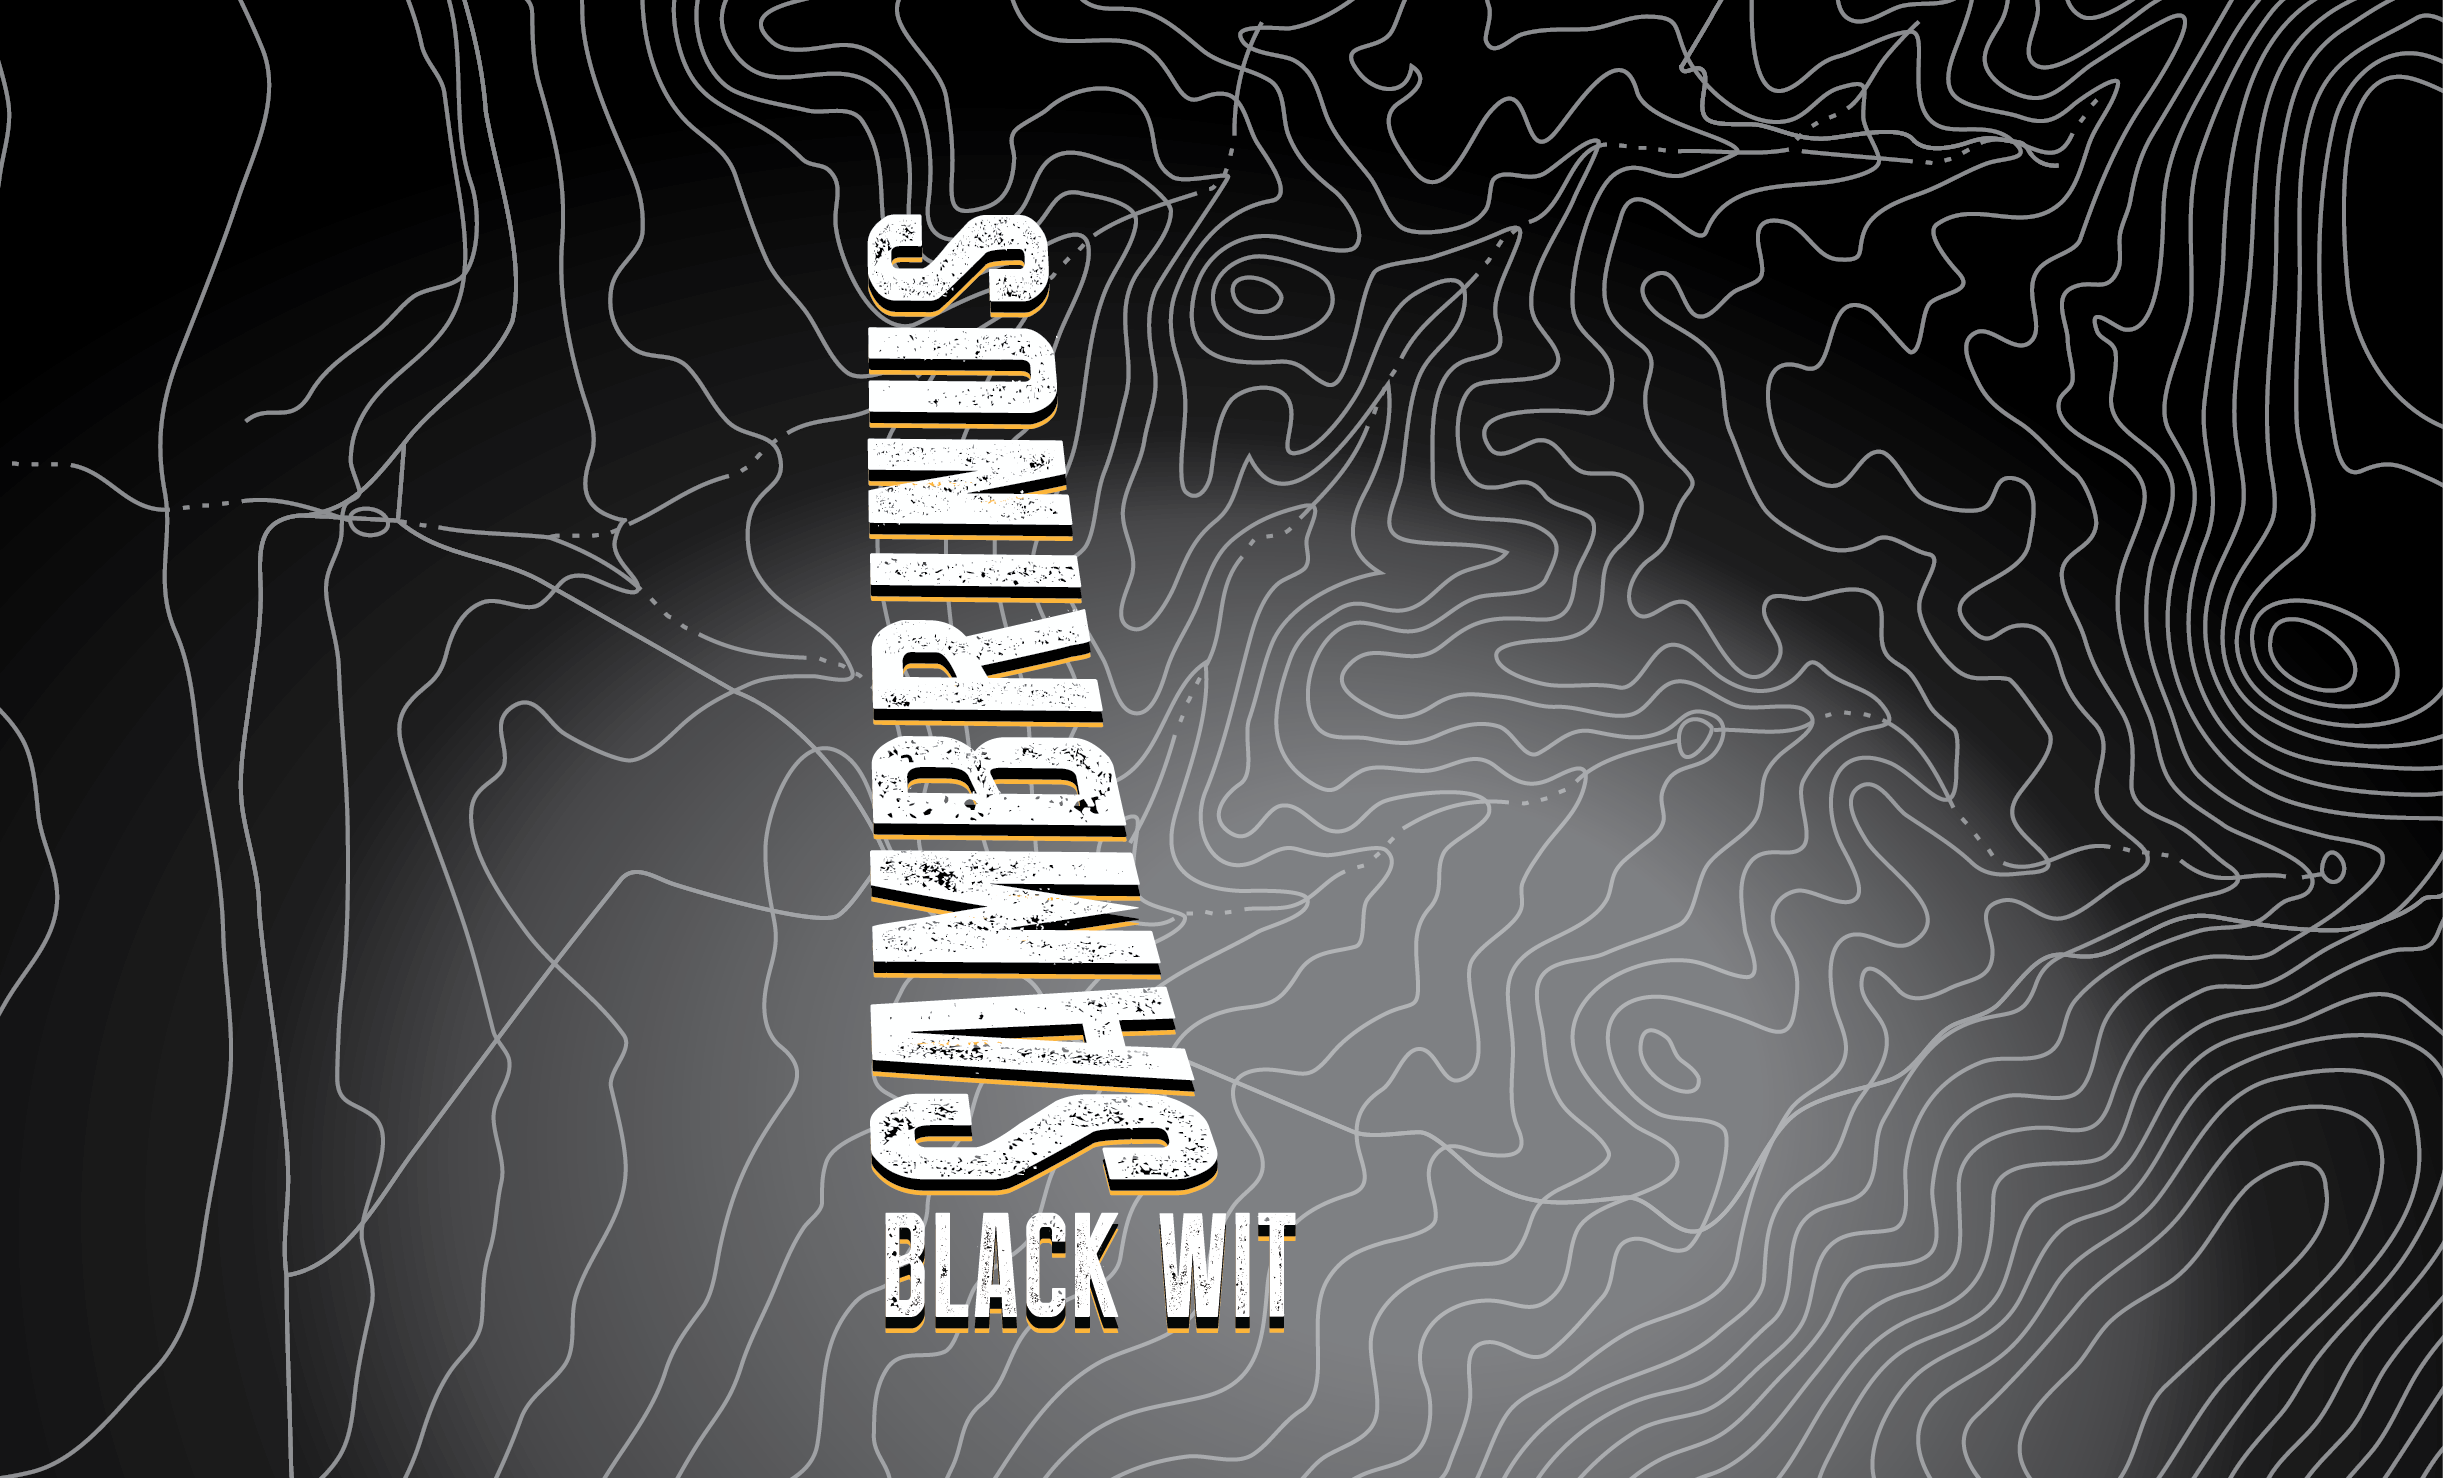 Bare Art- Sambrinus Black Wit - (no bleed) - 20190508.png